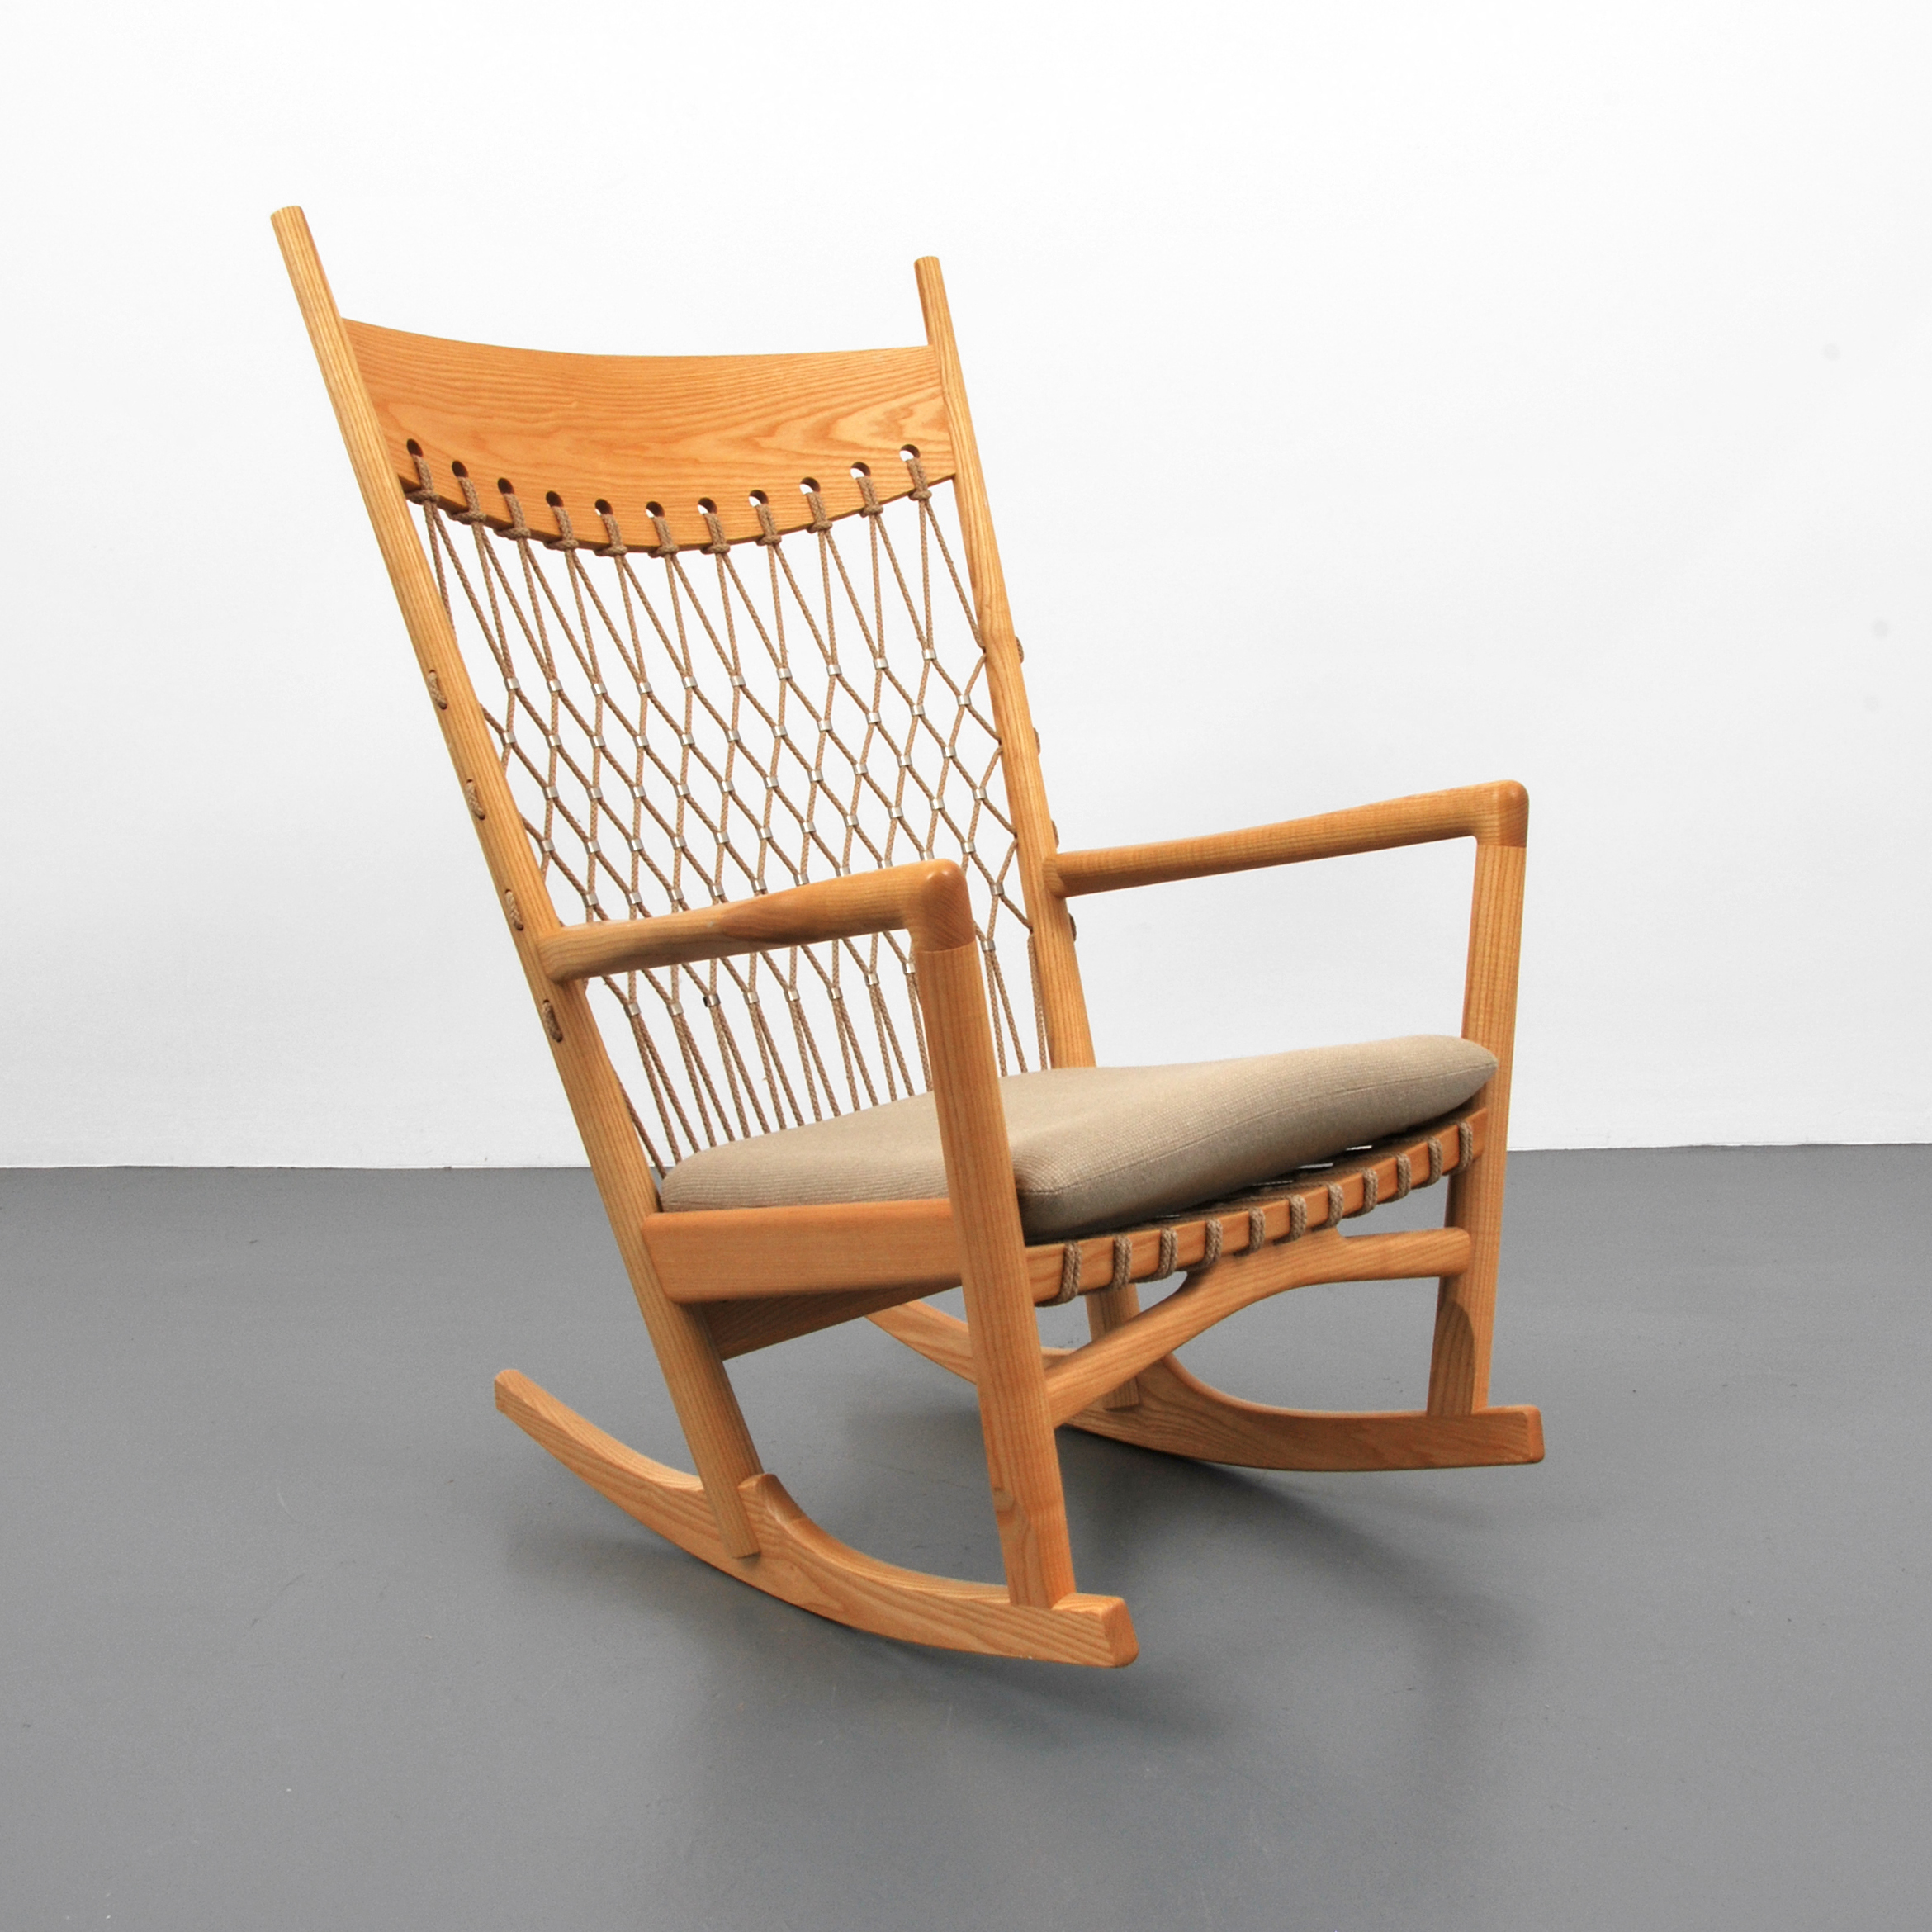 hans wegner rocking chair hanging sims 4 ample seating for all rare manufactured by pp mobler palm beach modern auctions image